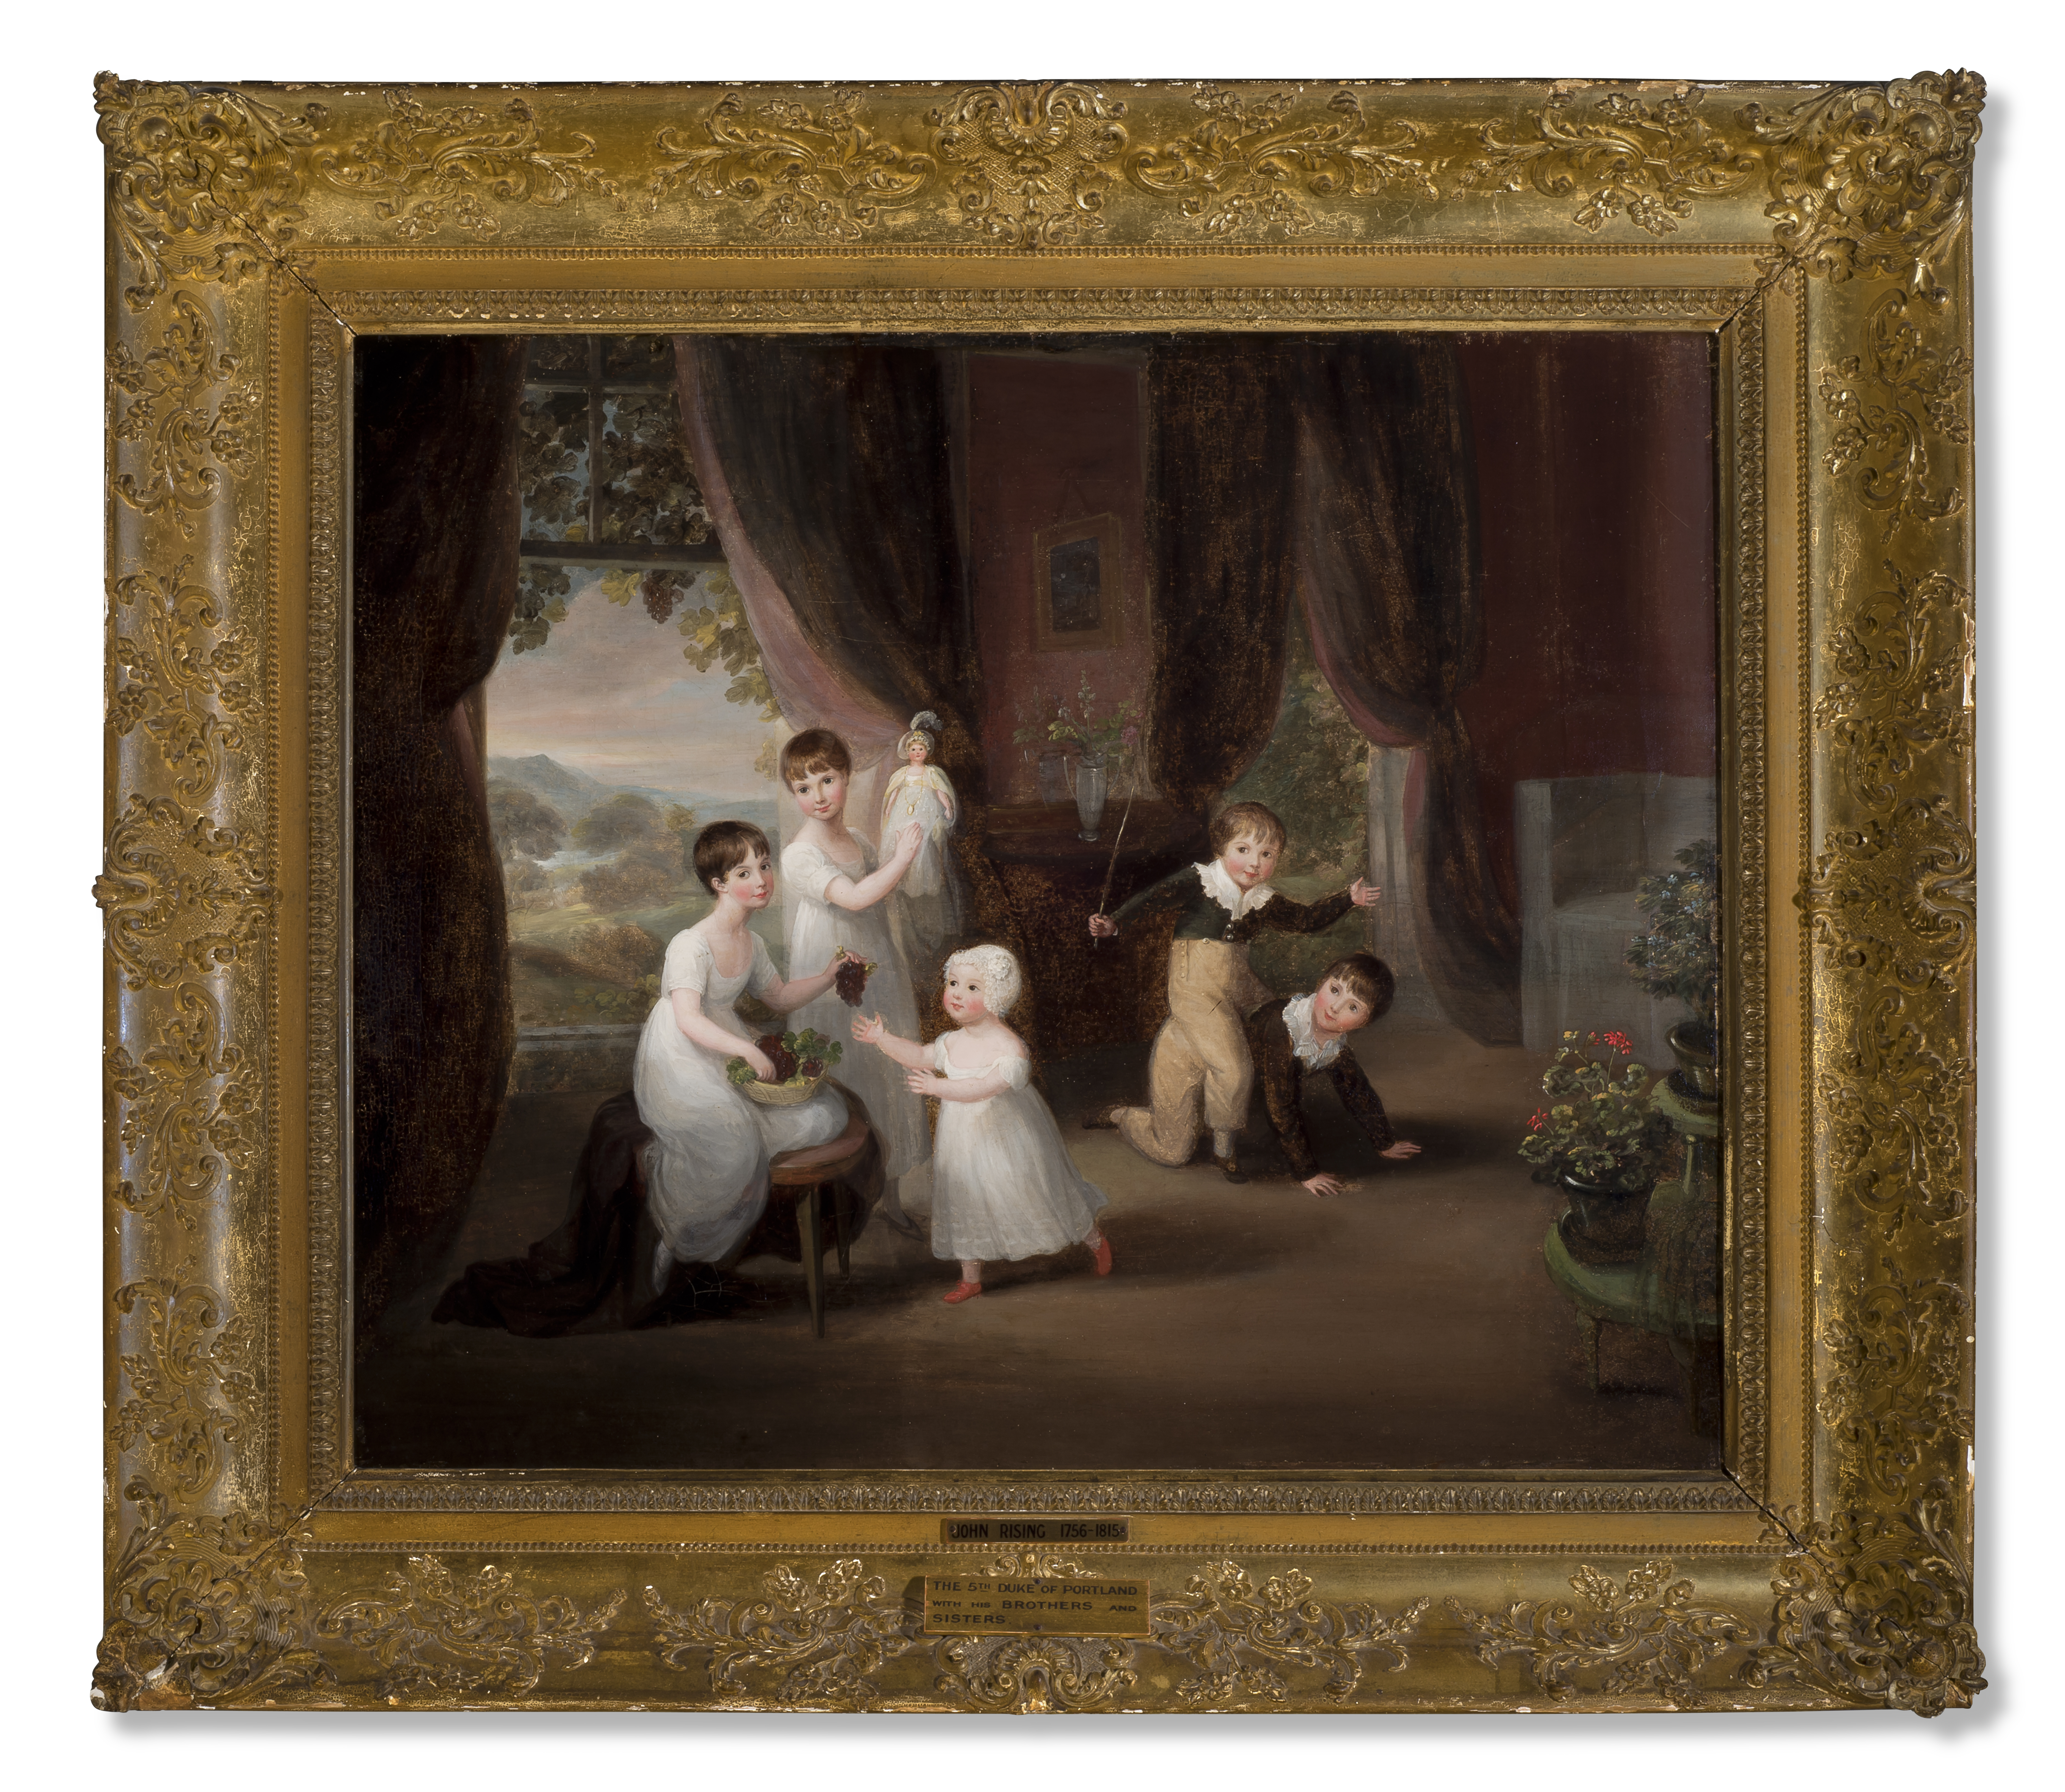 Painting in a gold coloured, ornate frame. It shows five children playing in a room. They are obviously from a wealthy family.